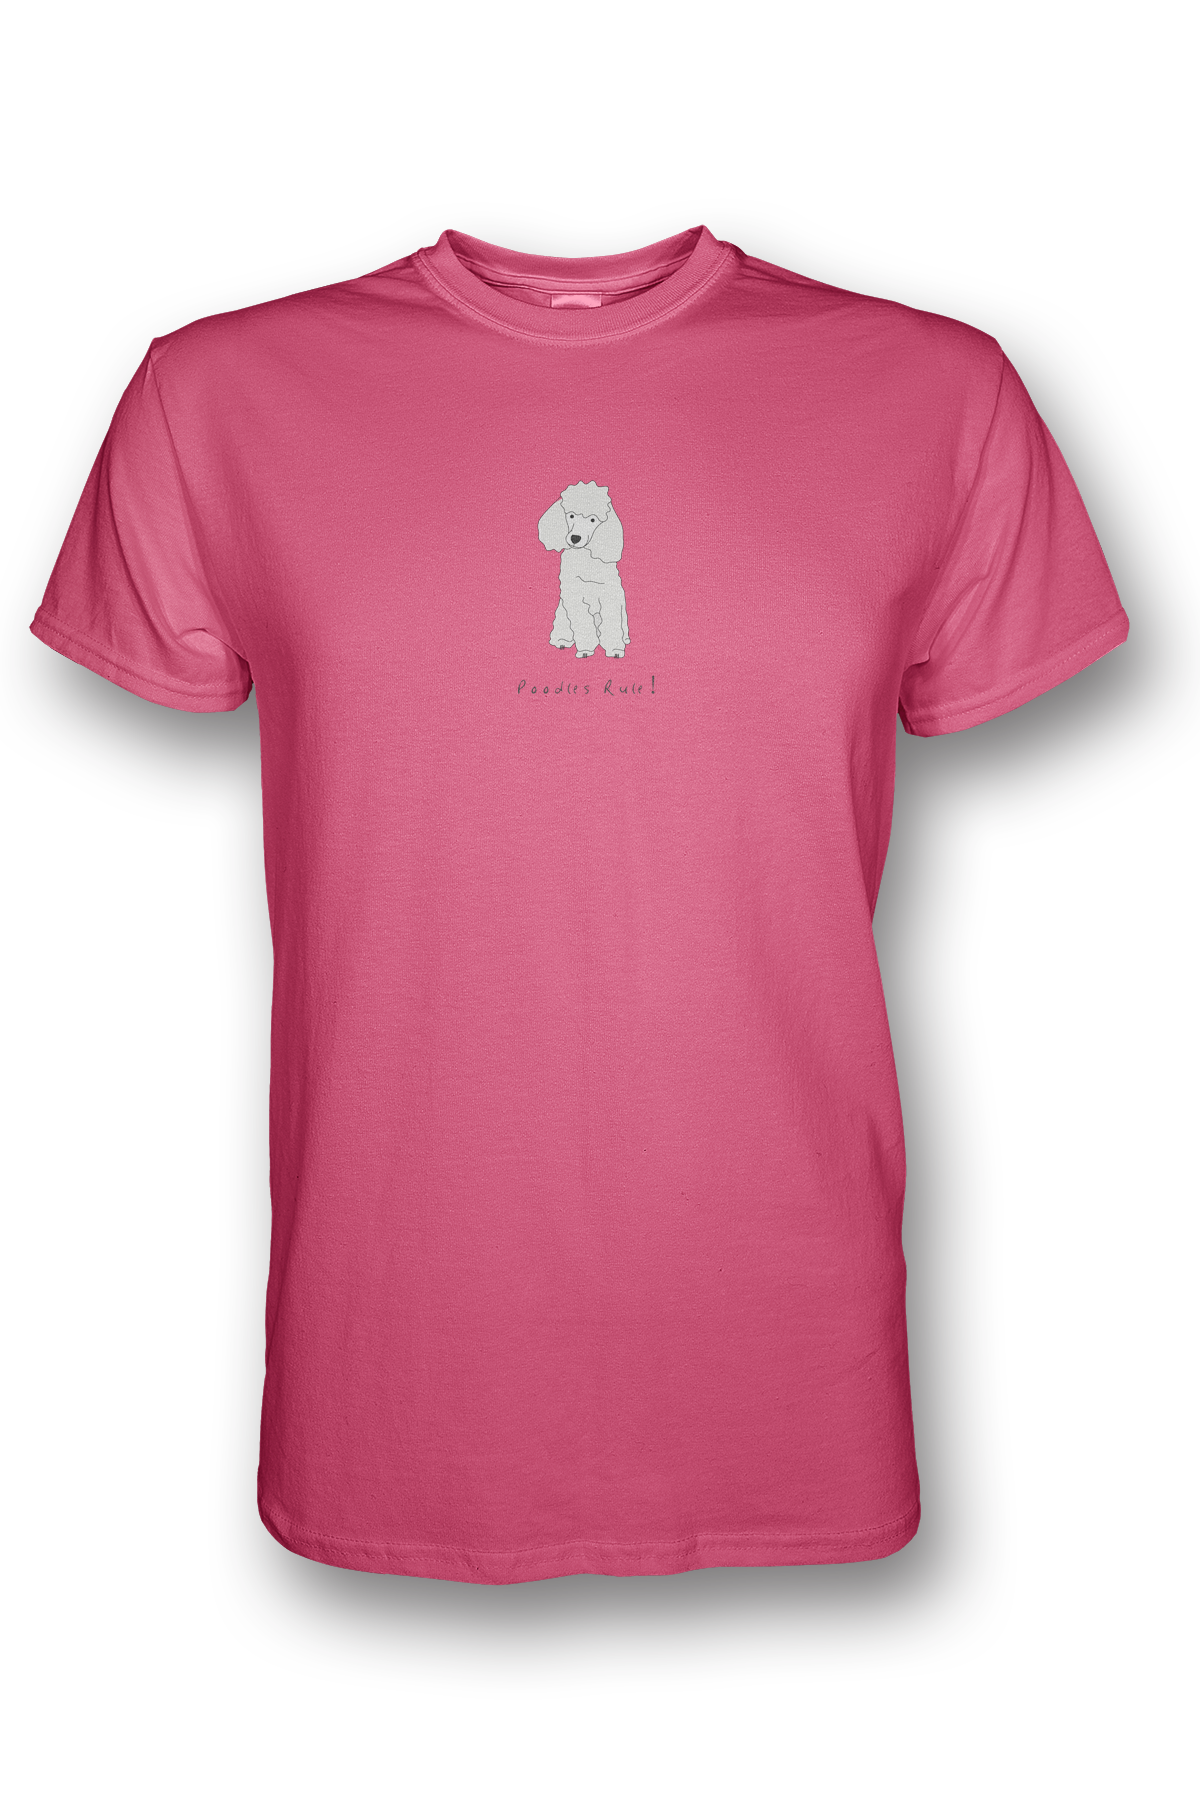 Mens Crew Neck T-Shirt - Poodles Rule! Neon Pink